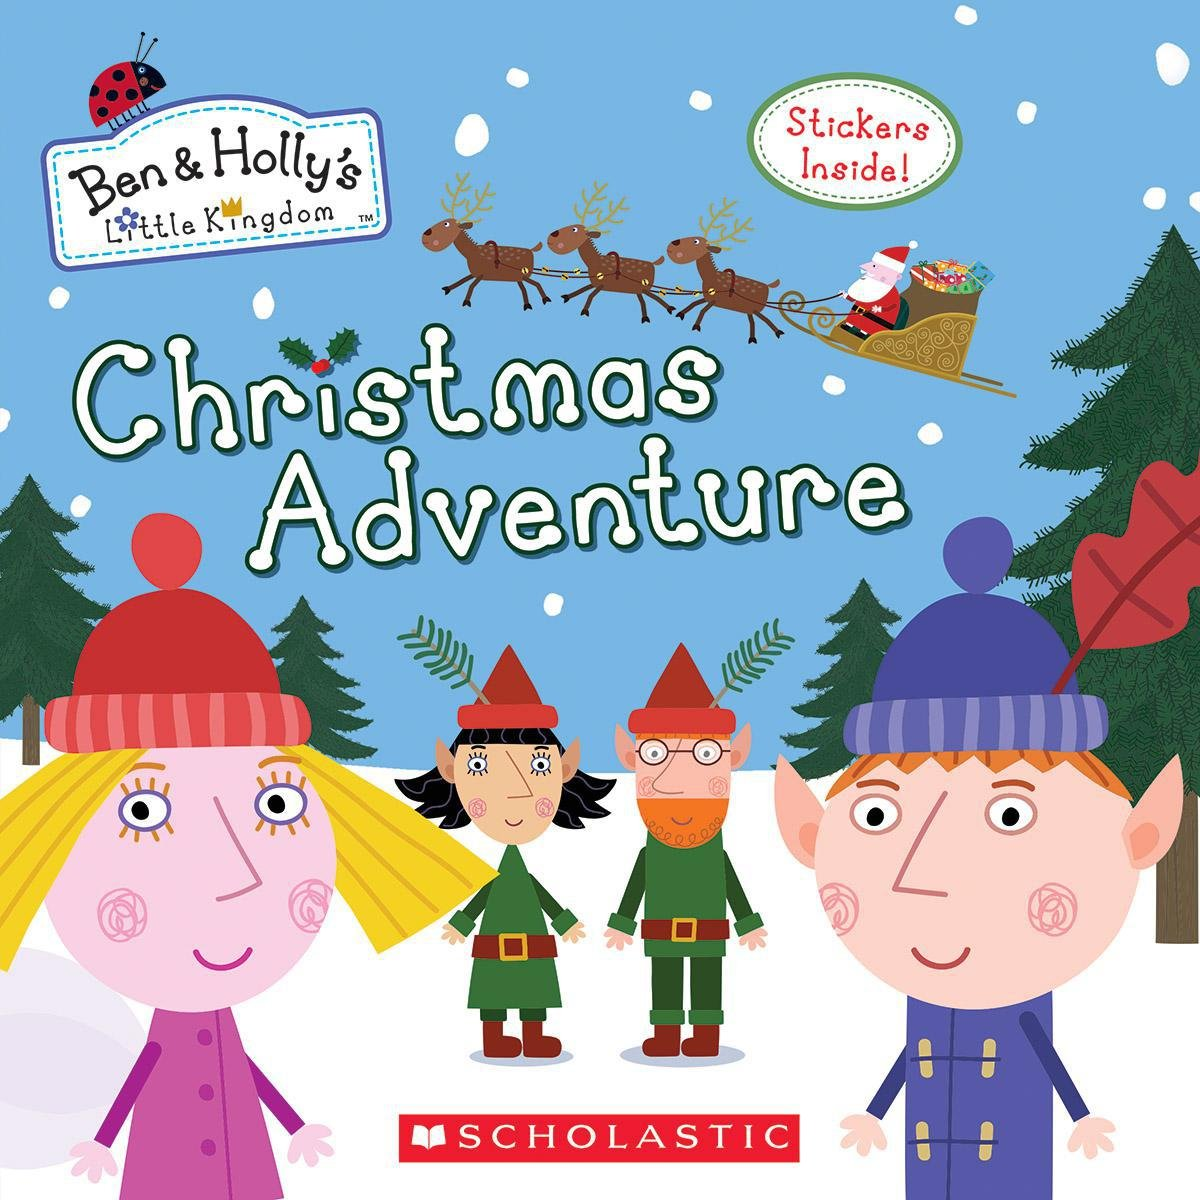 christmas adventure ben hollys little kingdom eone 9781338228137 amazoncom books - Ben And Holly Christmas